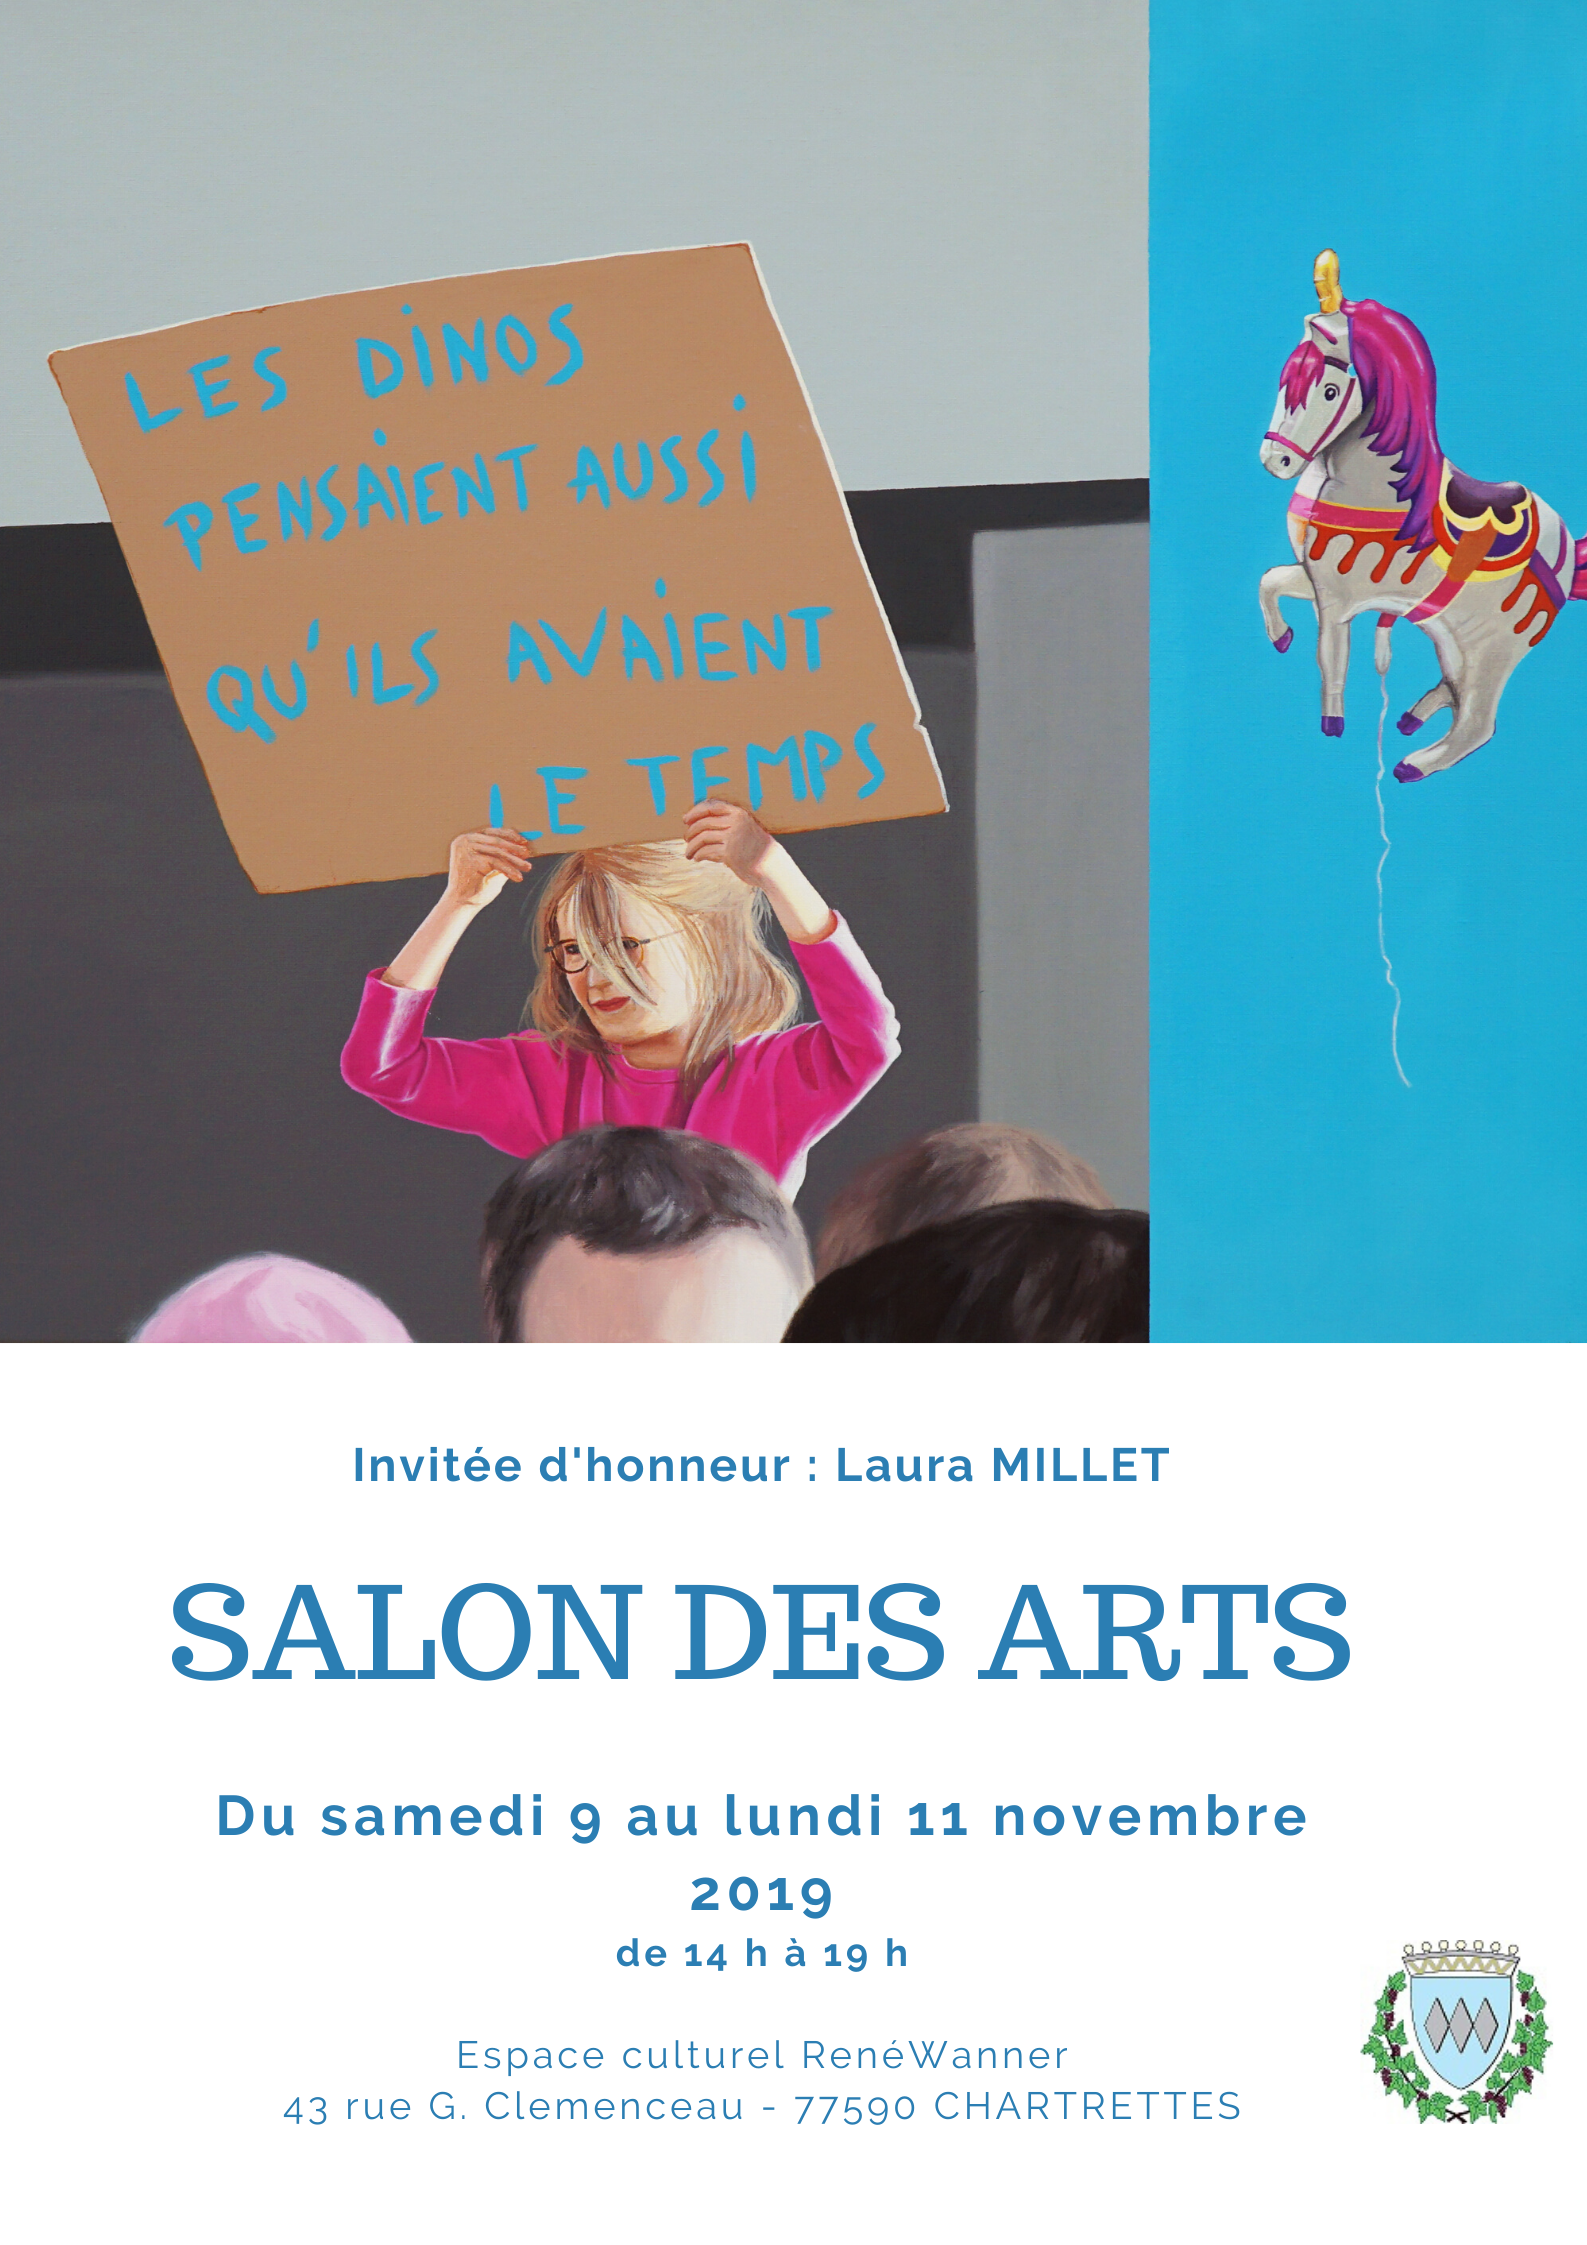 AFFICHE SALON DES ARTS 2019